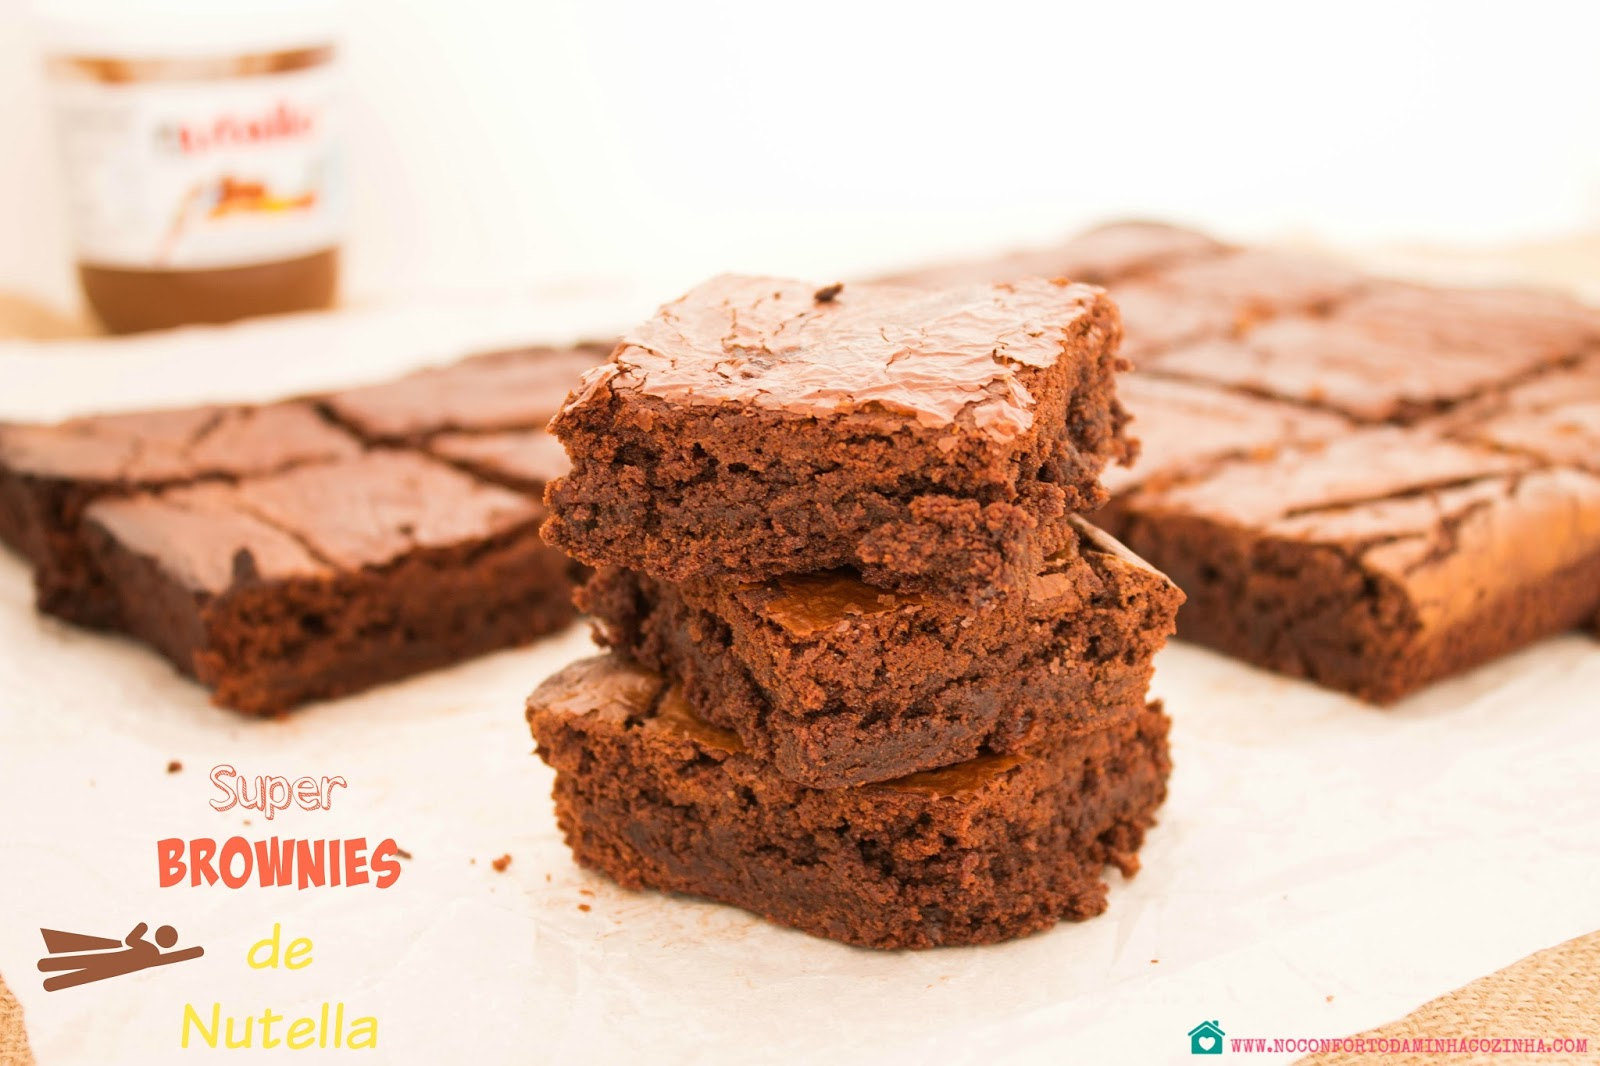 Super Brownies de Nutella...aquele creme de chocolate maligno!